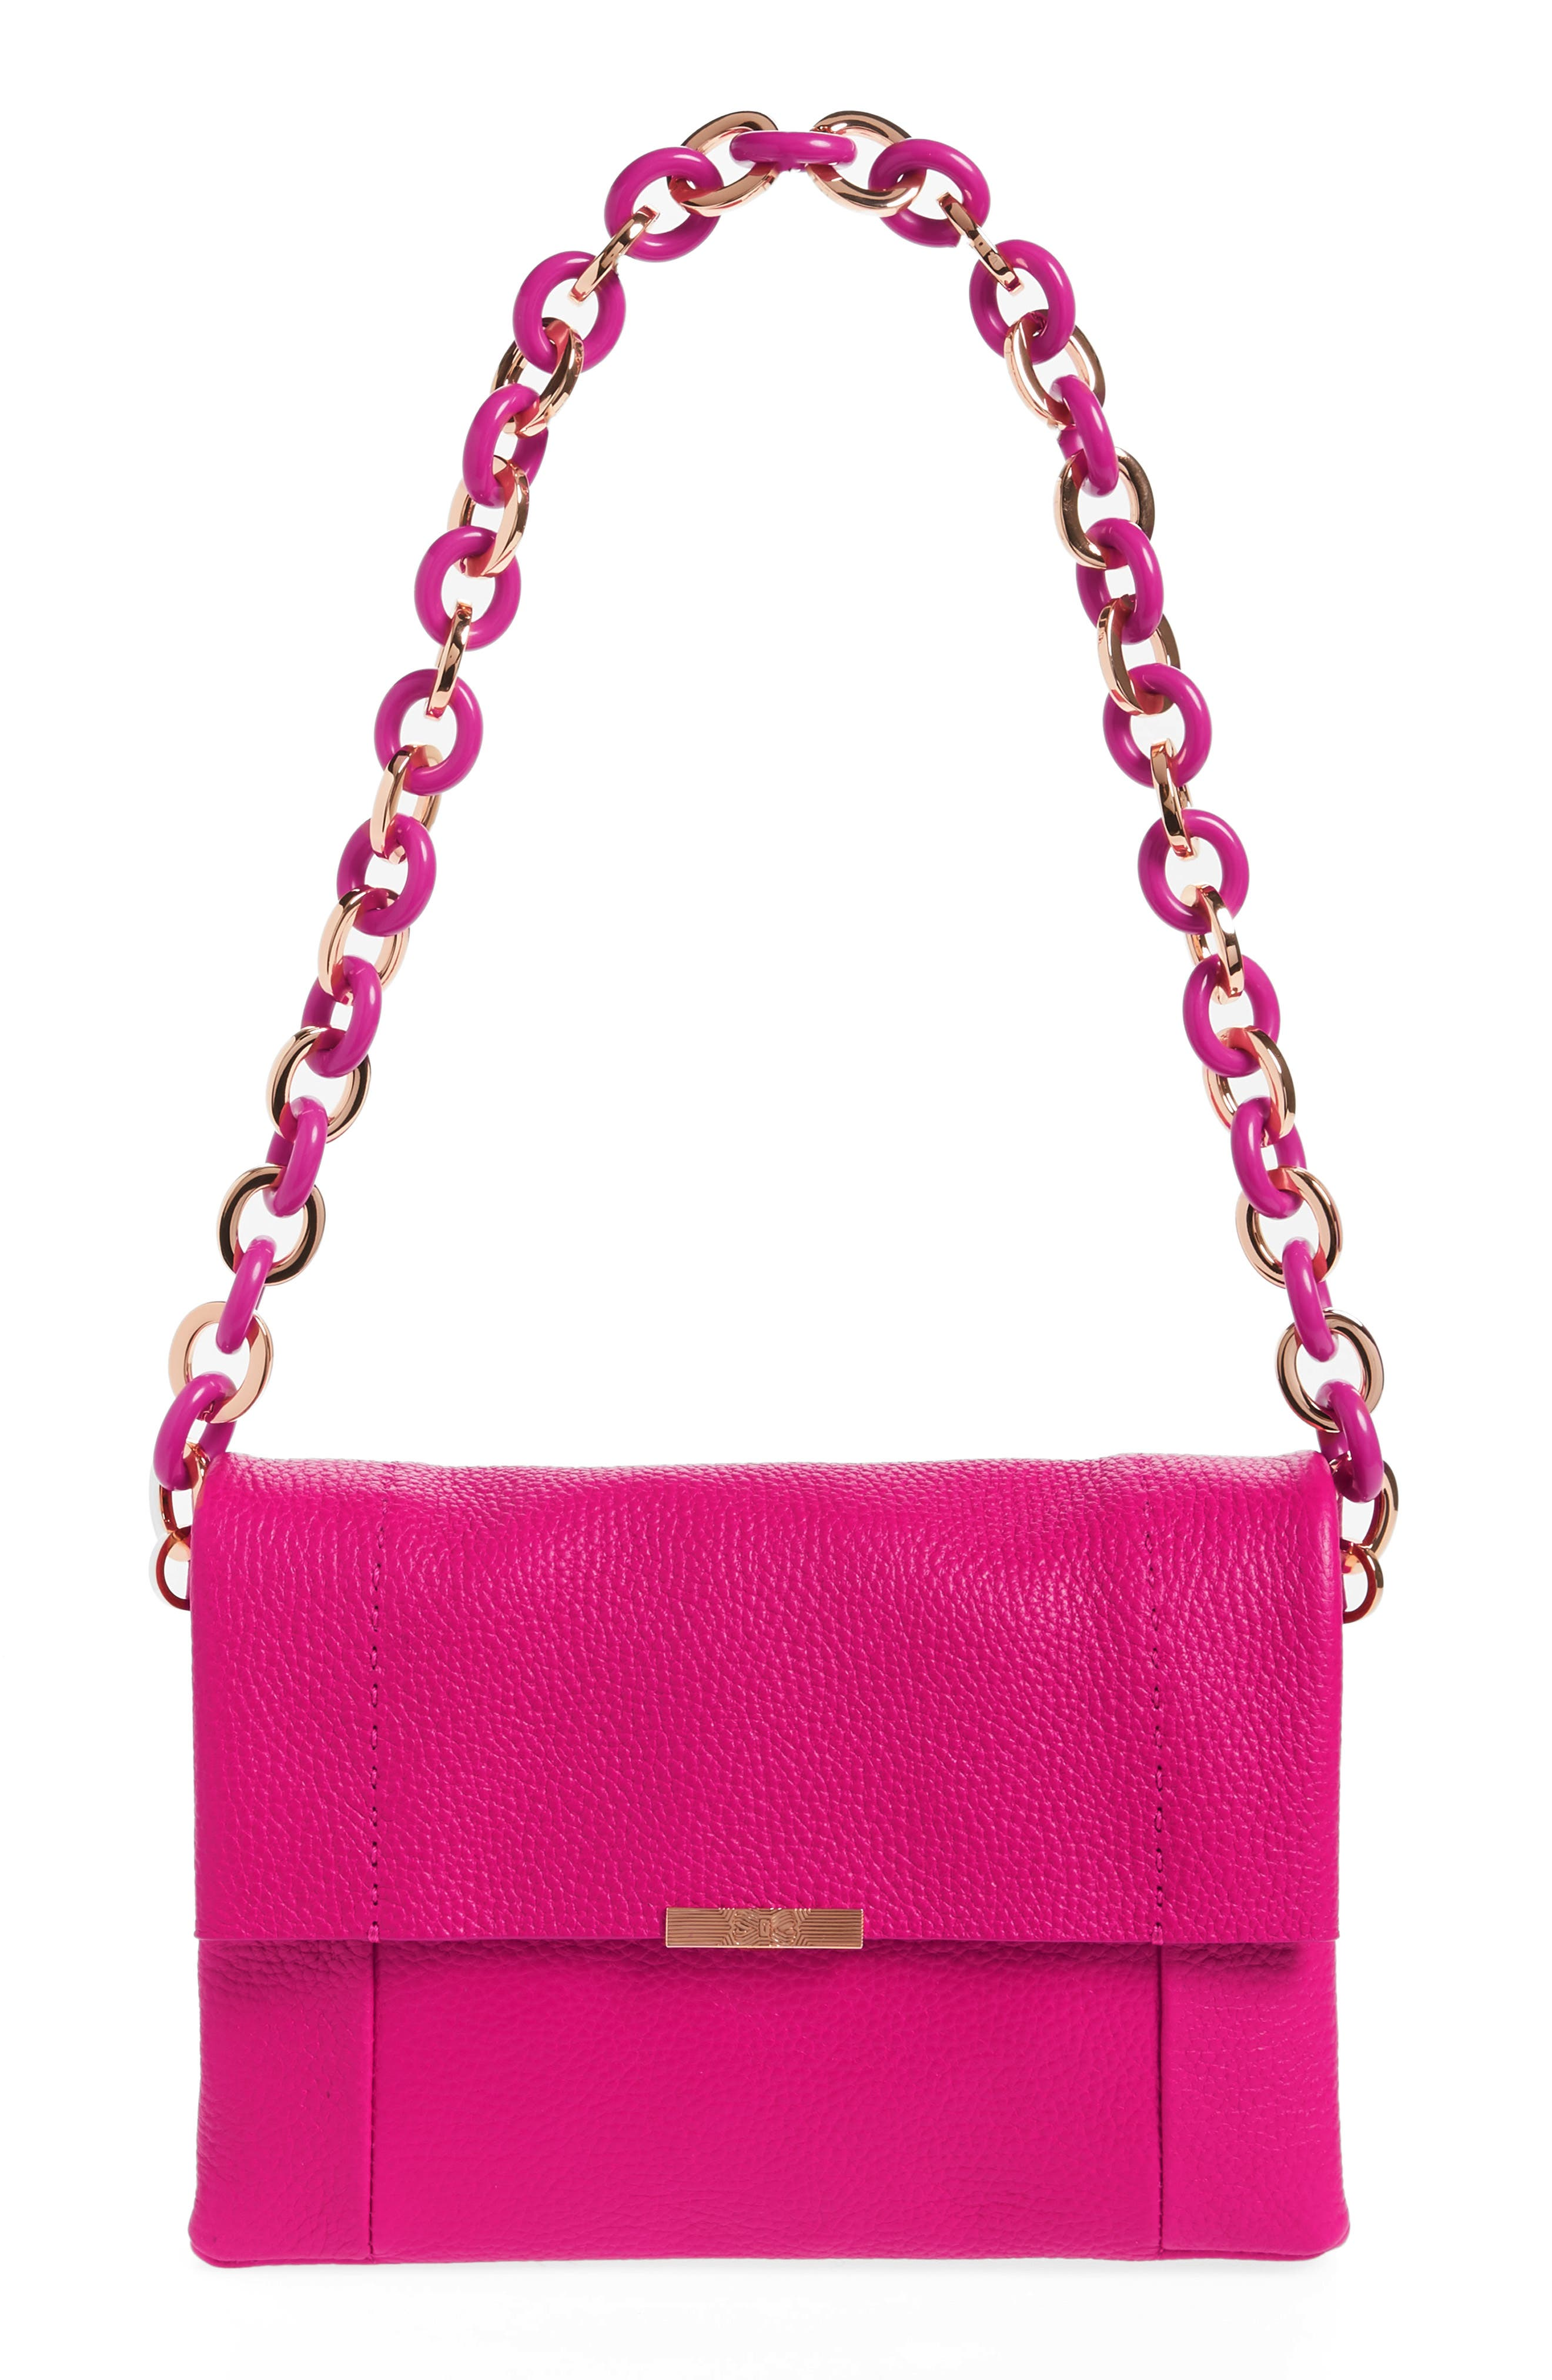 Ipomoea Leather Shoulder Bag,                         Main,                         color, FUCHSIA